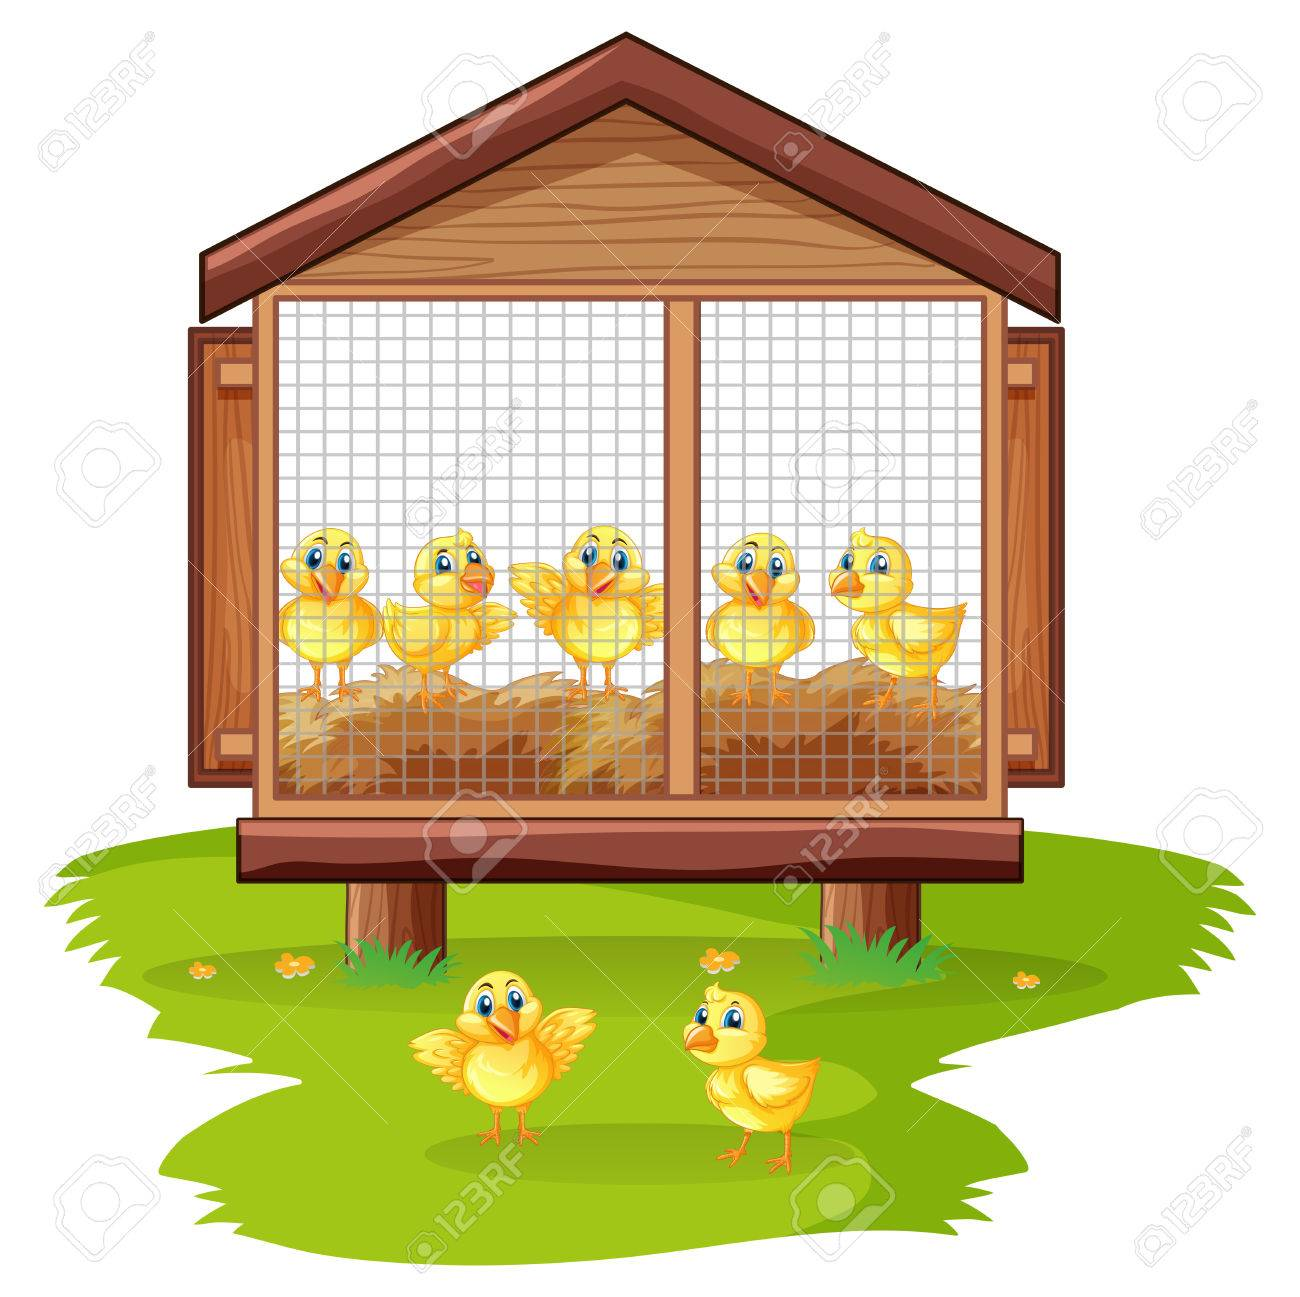 Little chicks in chicken coop illustration.